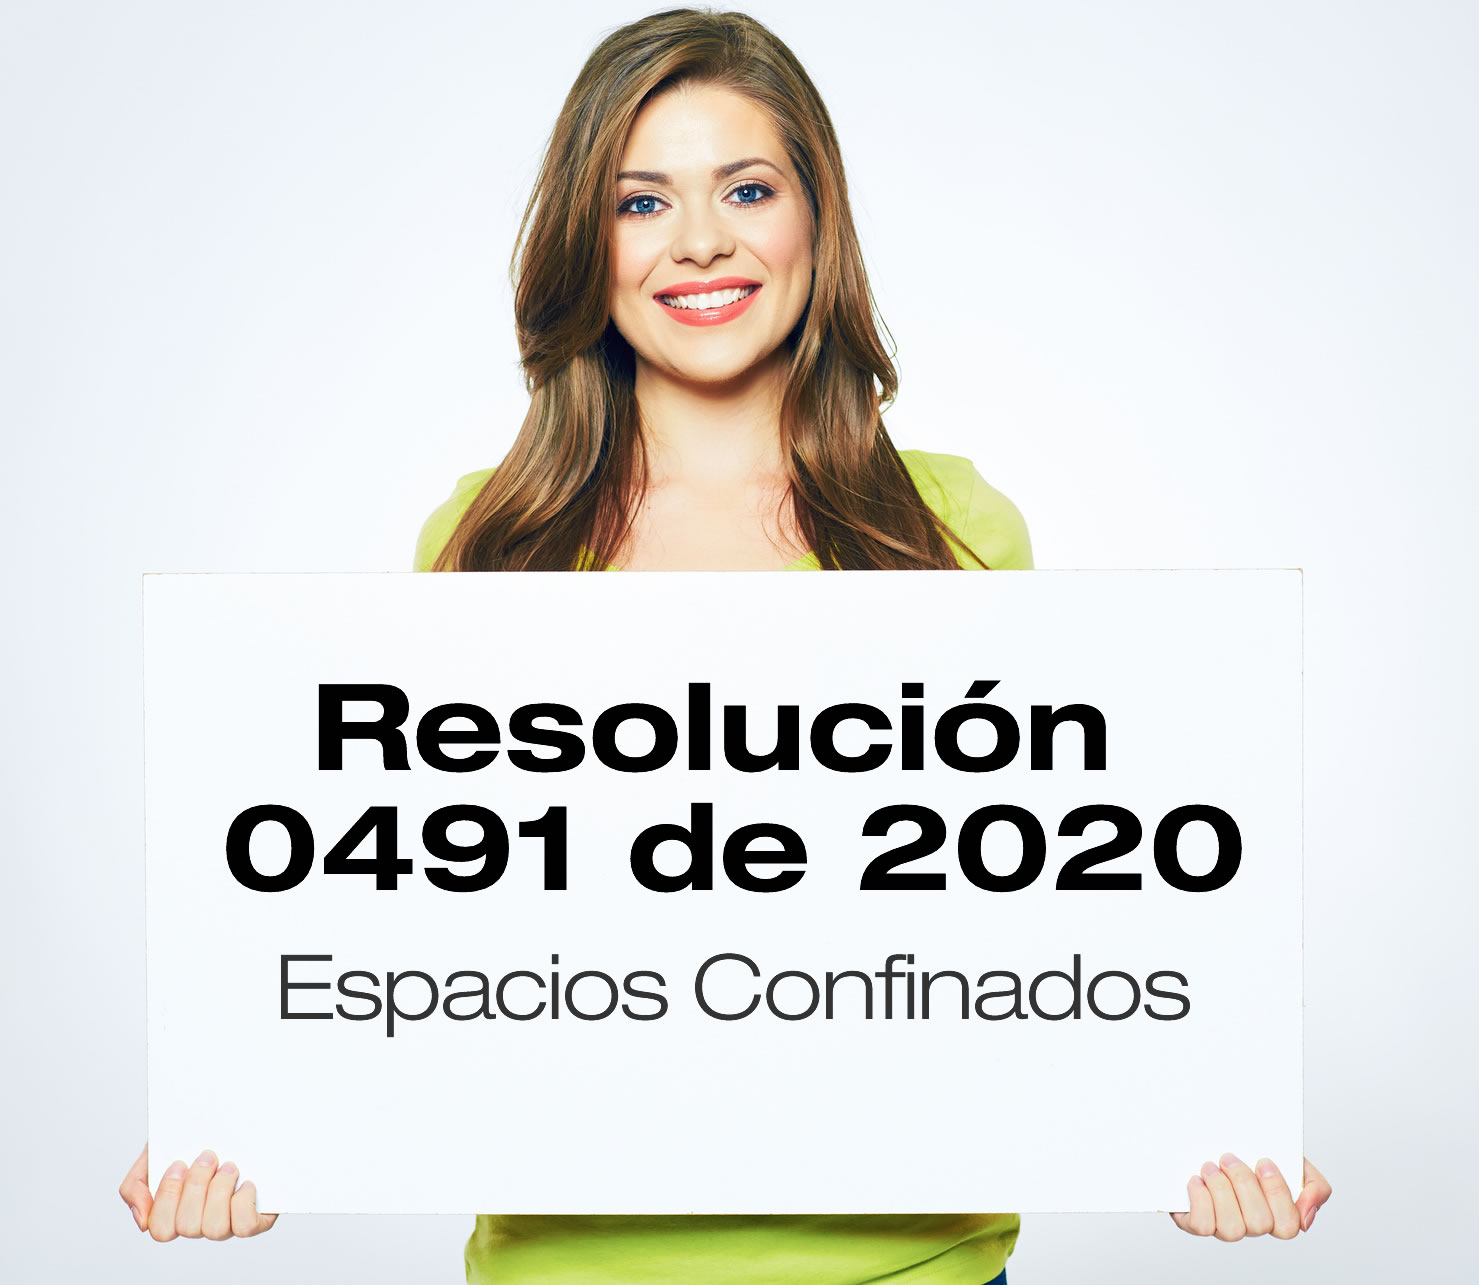 Resolución 0491 de 2020